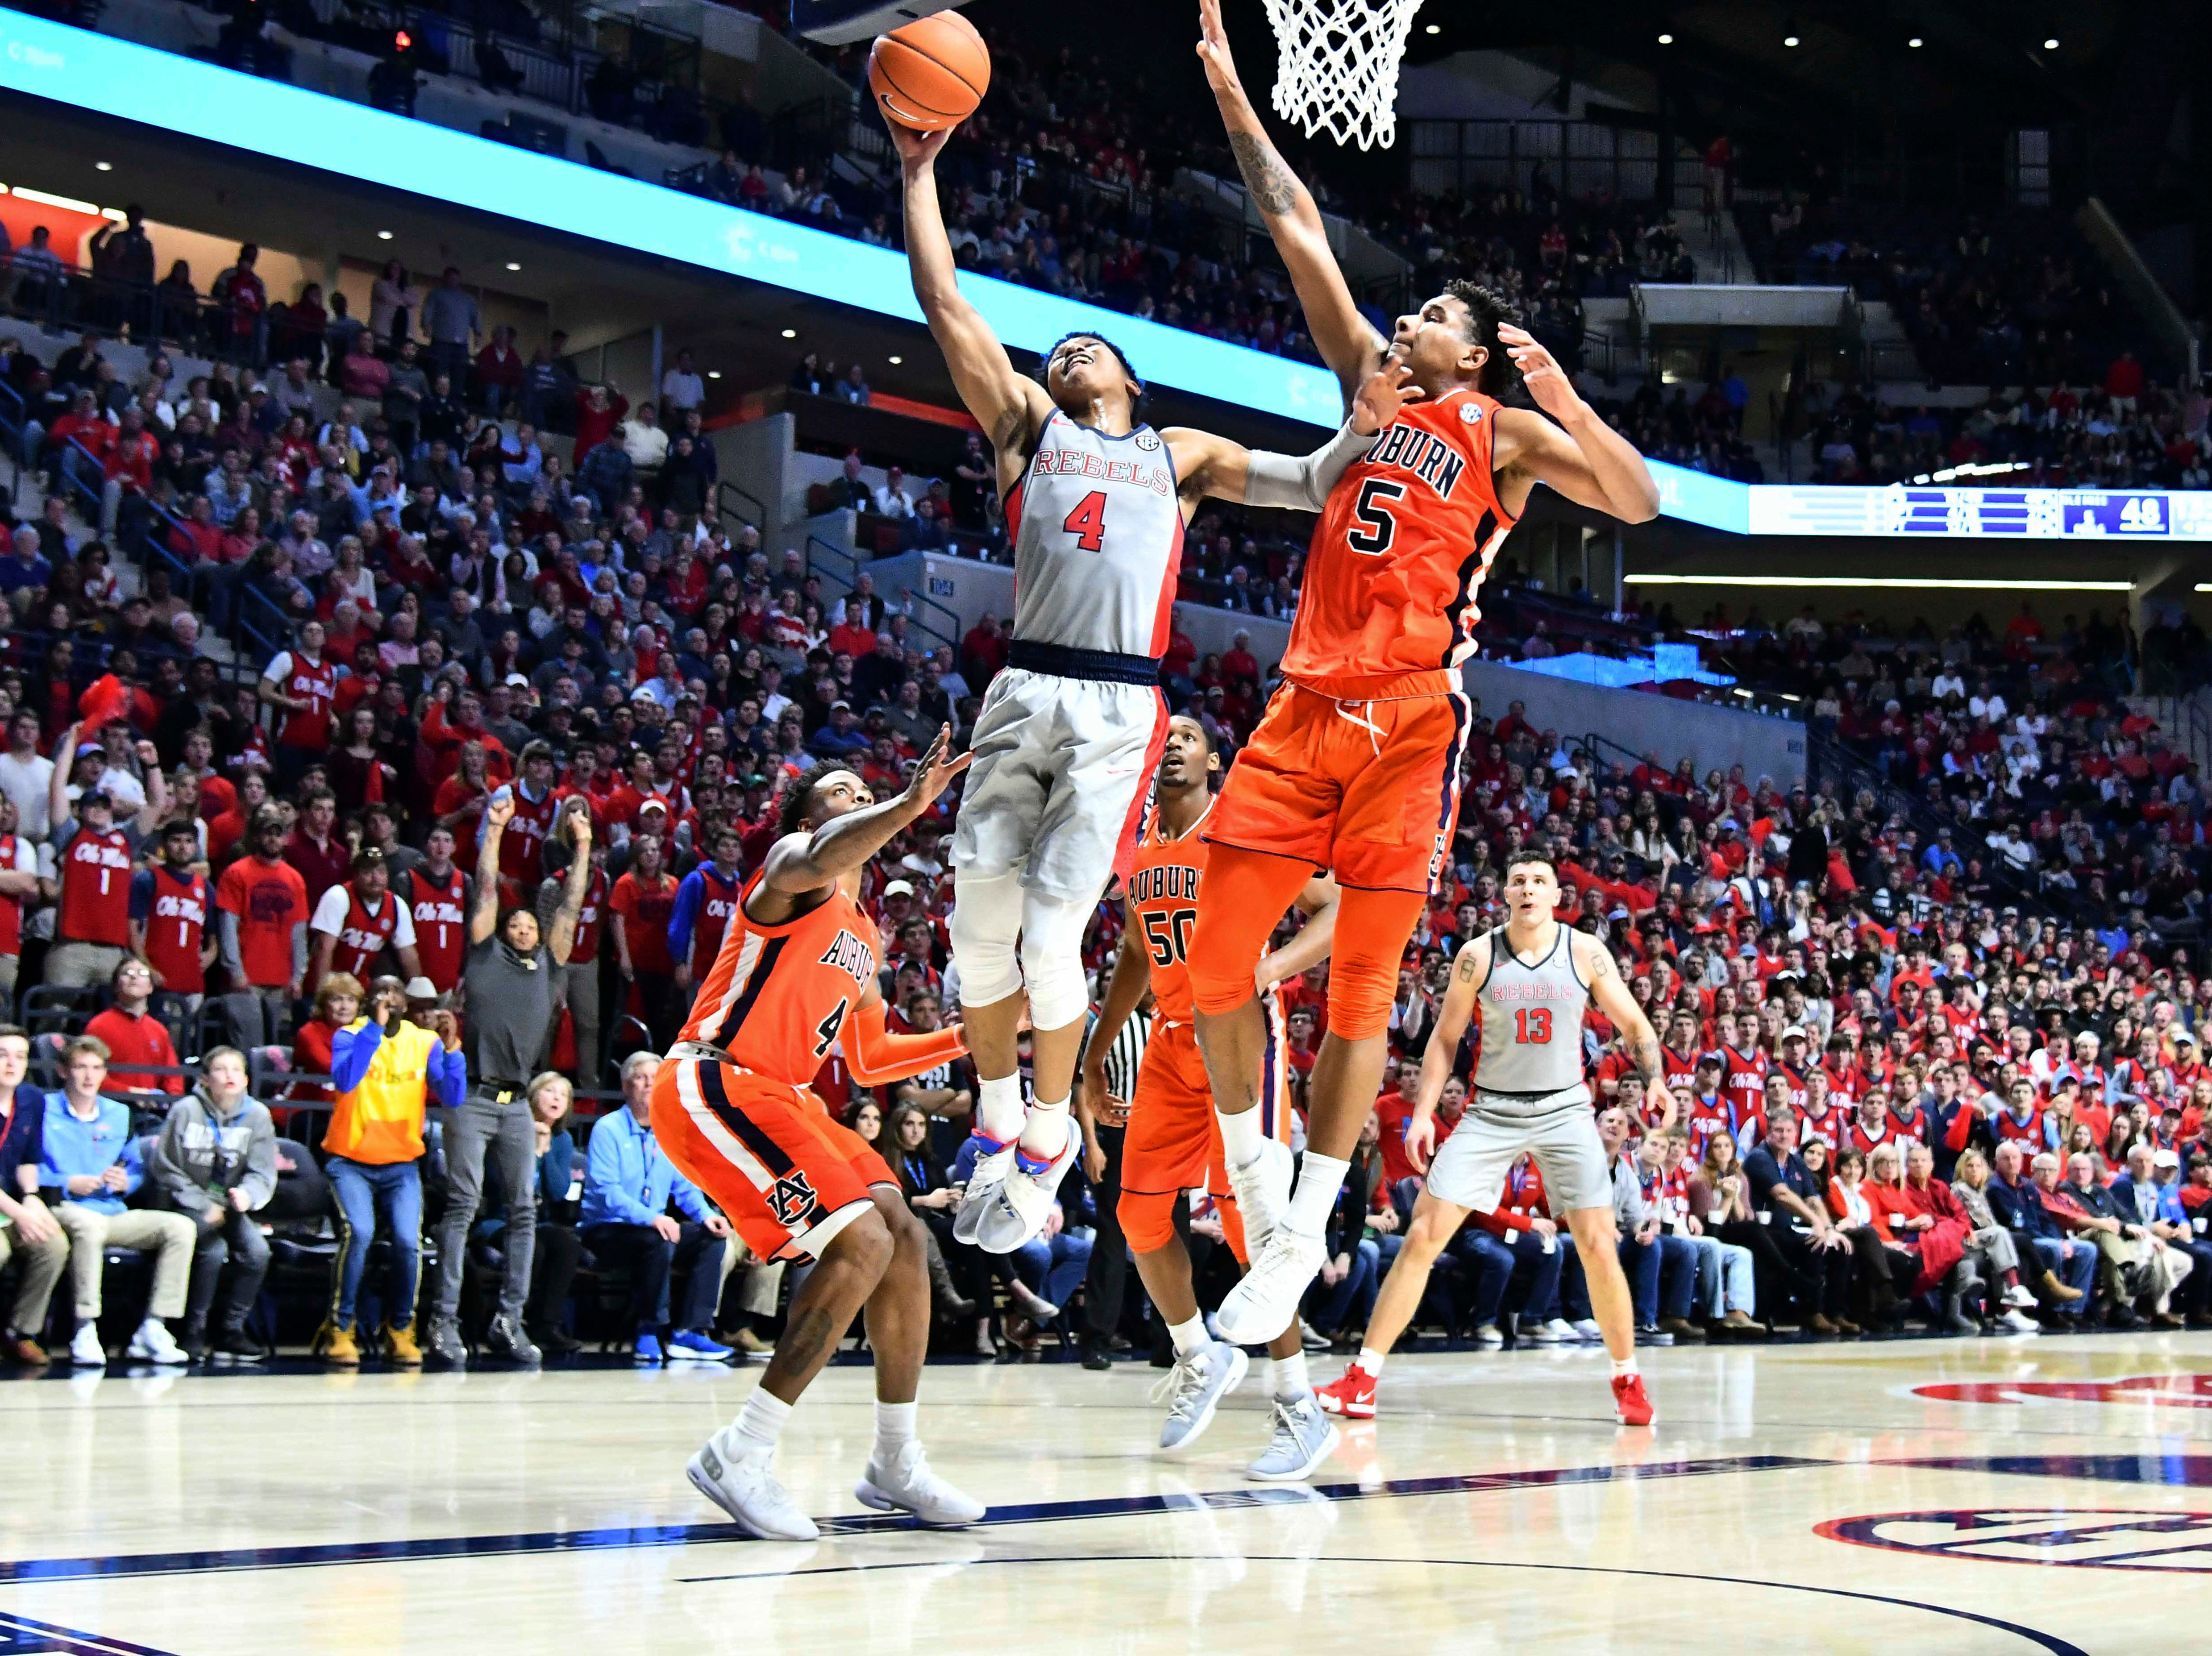 Jan 9, 2019; Oxford, MS, USA; Mississippi Rebels guard Breein Tyree (4) goes up for a shot defended by Auburn Tigers forward Chuma Okeke (5) during the second half at The Pavilion at Ole Miss. Mandatory Credit: Matt Bush-USA TODAY Sports